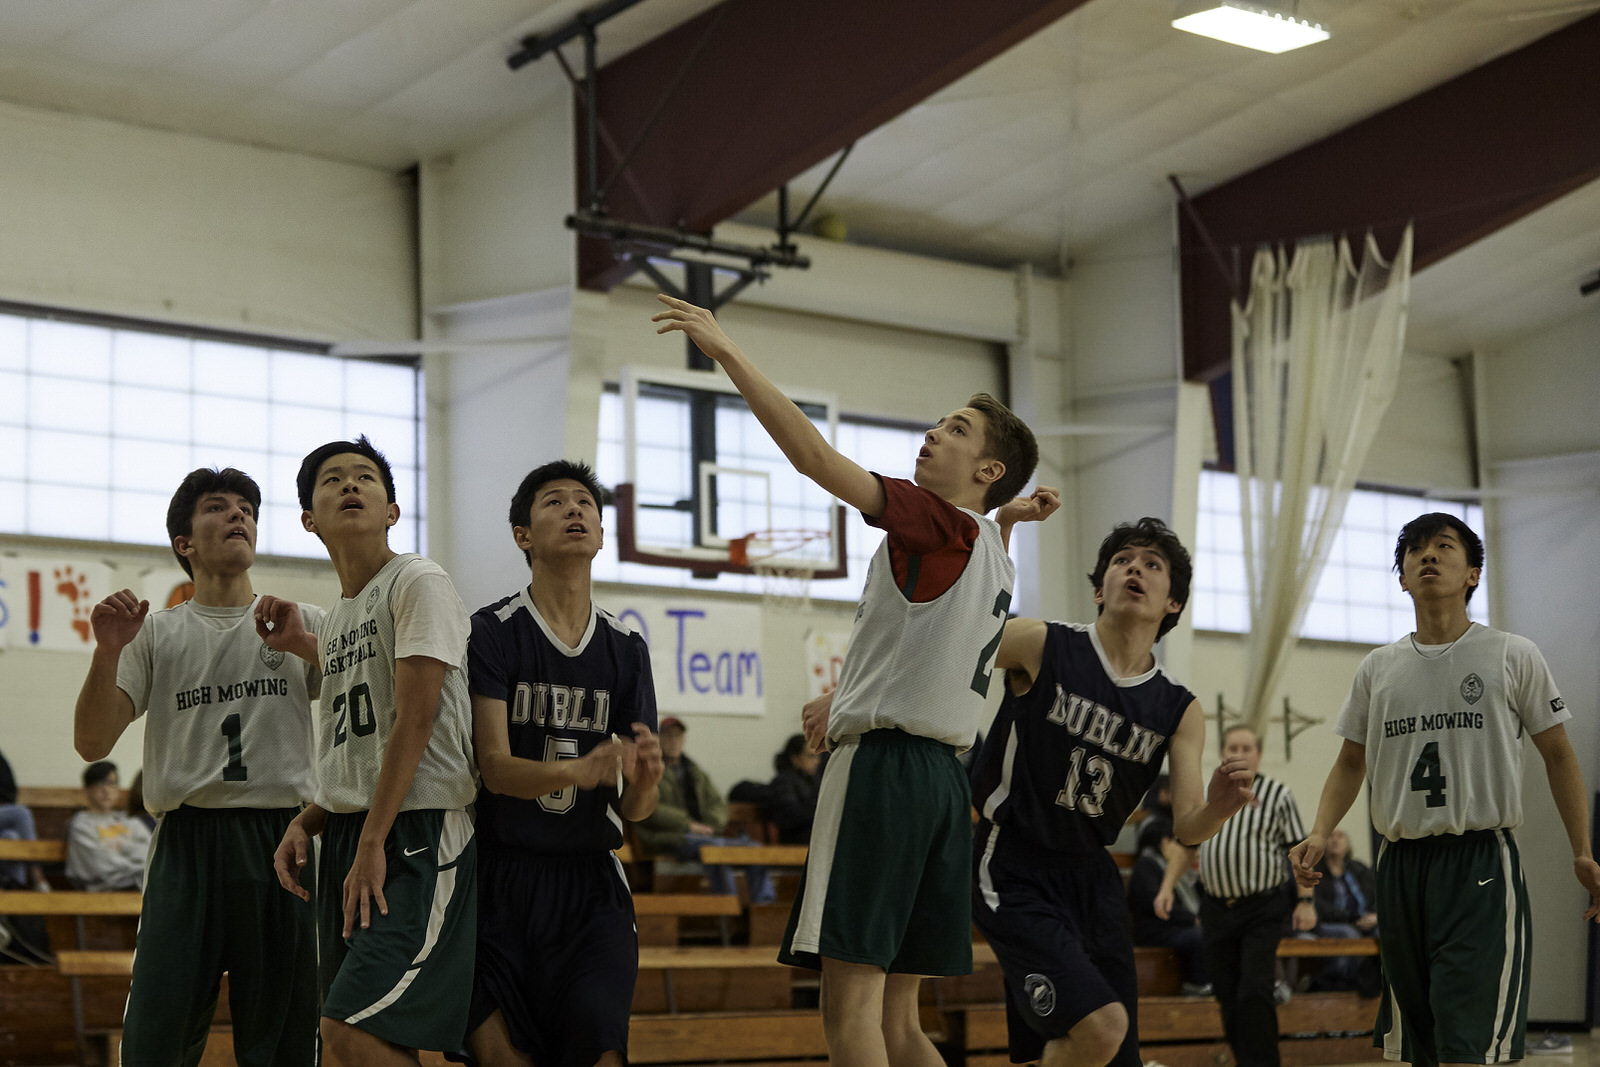 Dublin JV Boys Basketball vs High Mowing School - Jan 26 2019 - 0199.jpg